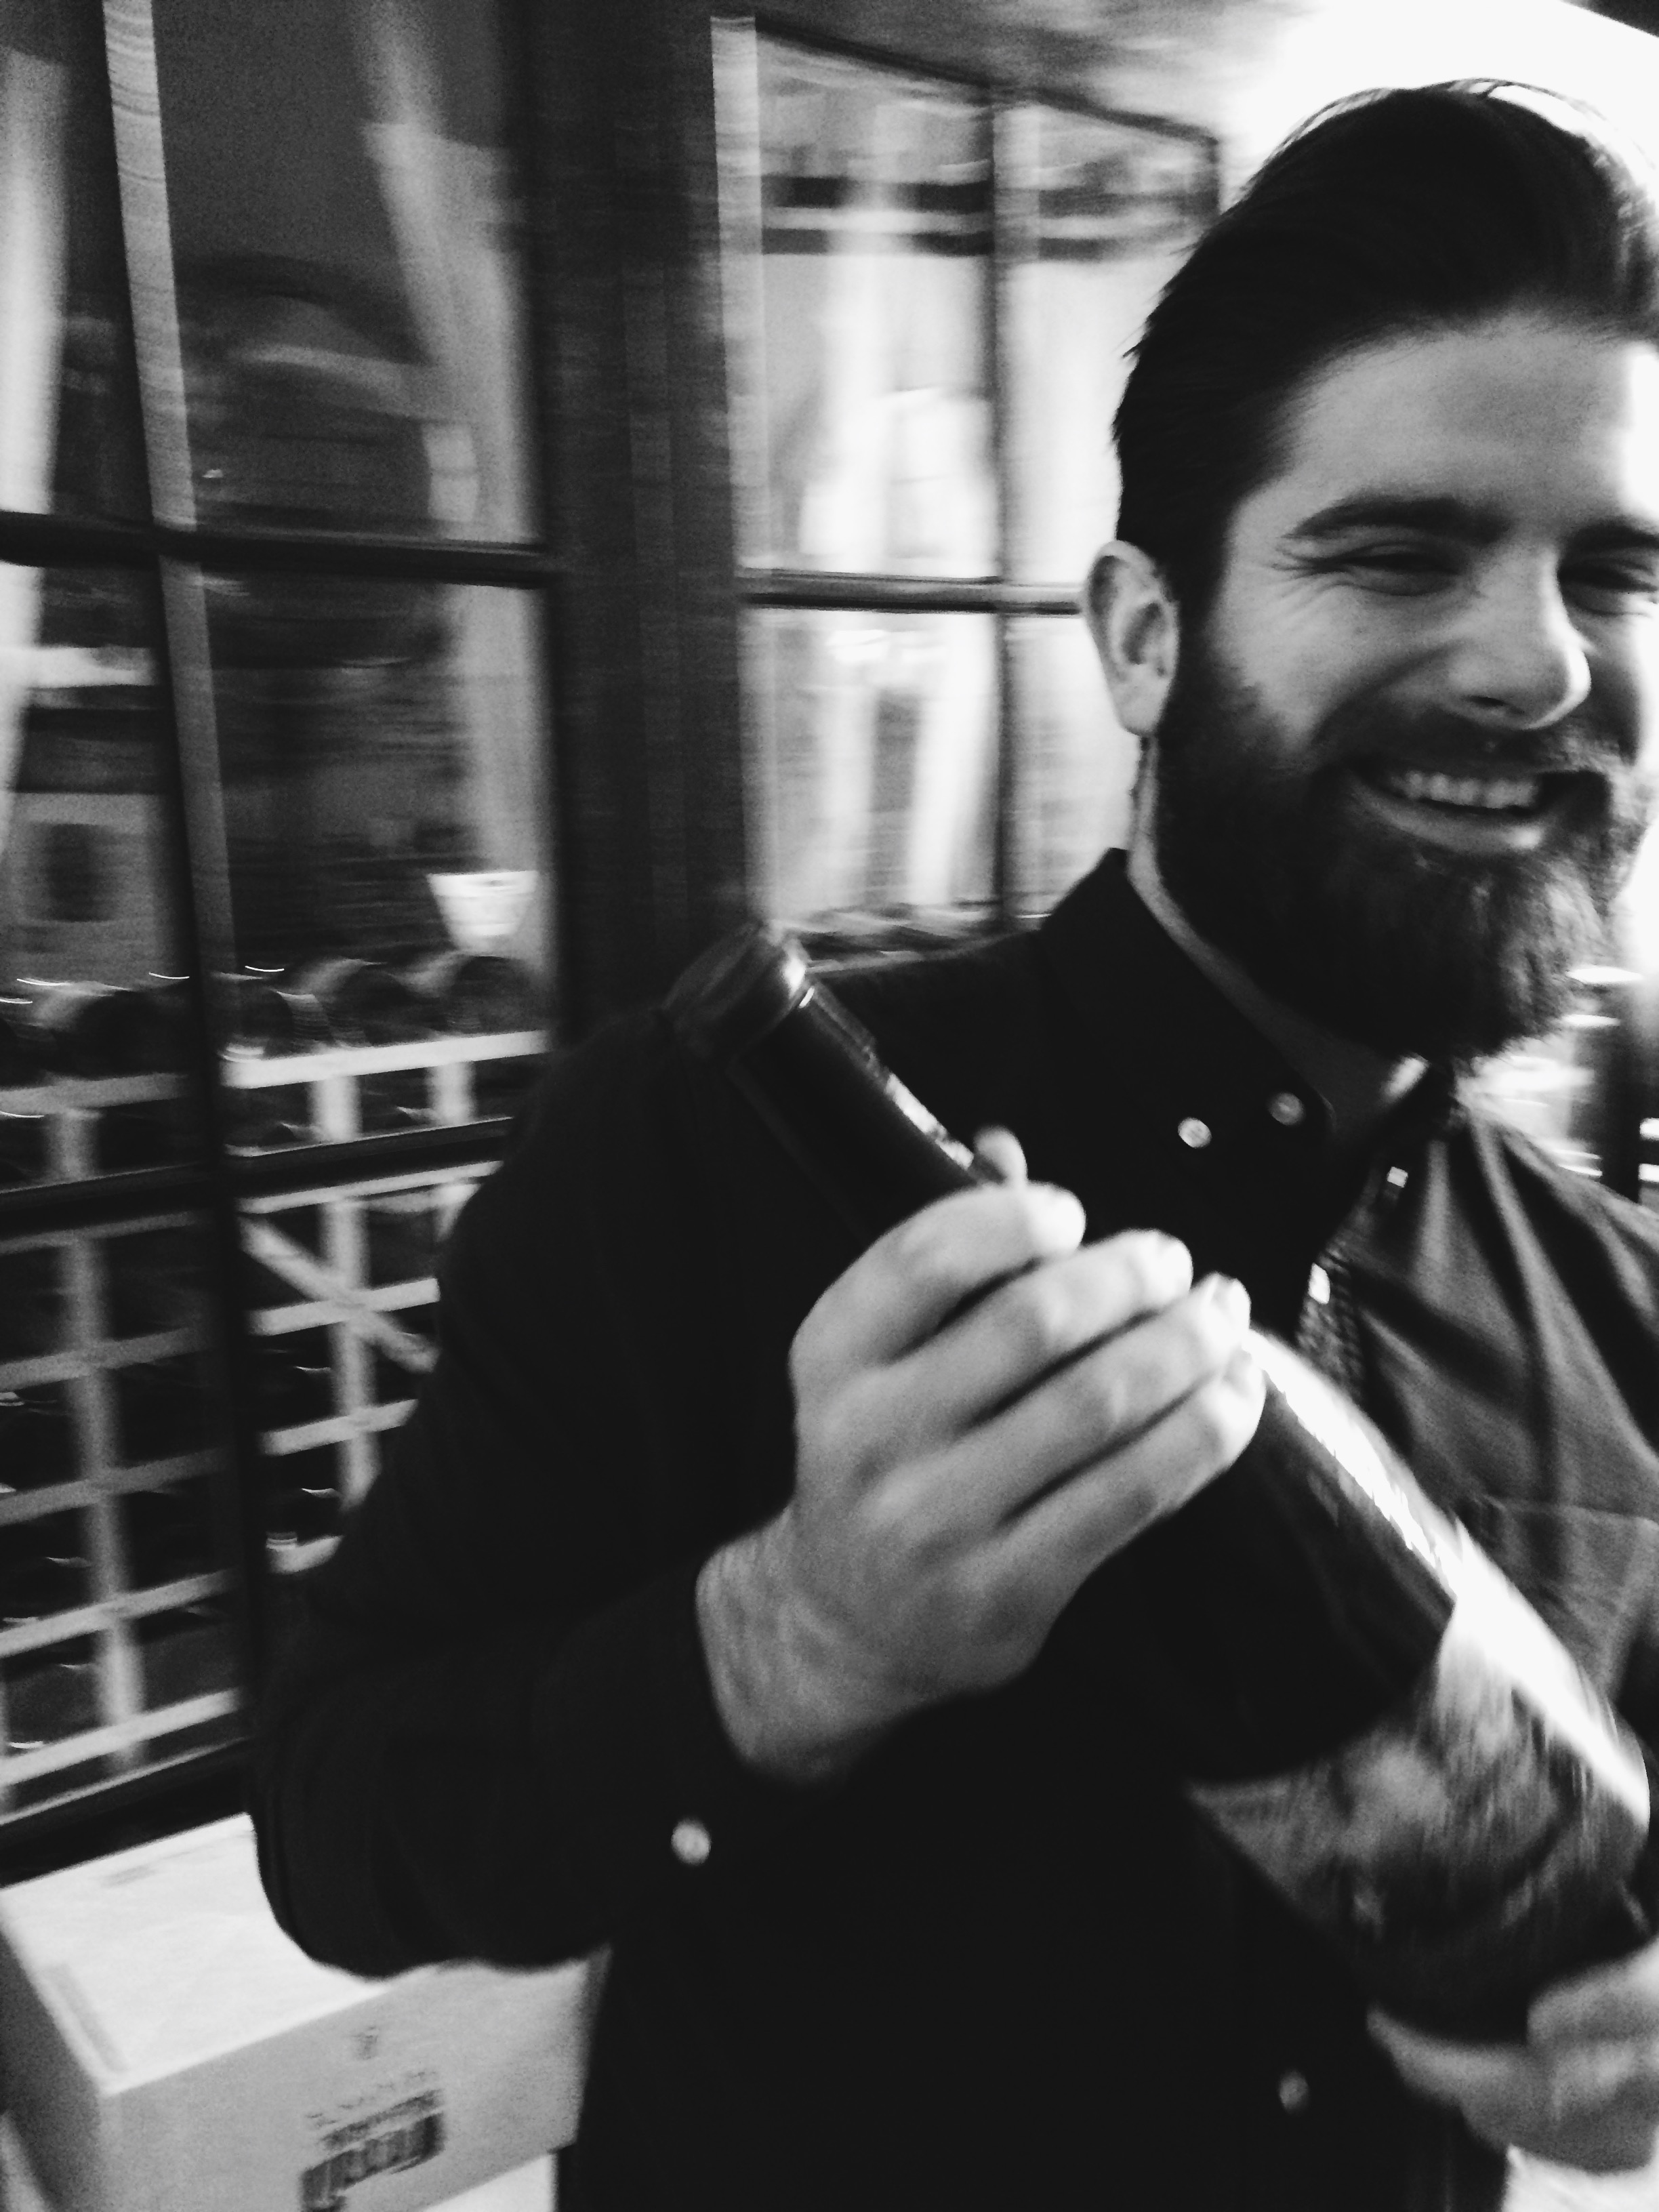 Angelo has been a wine manager at bedales wines since 2015. he has worked on vineyards in north america, europe & africa. -